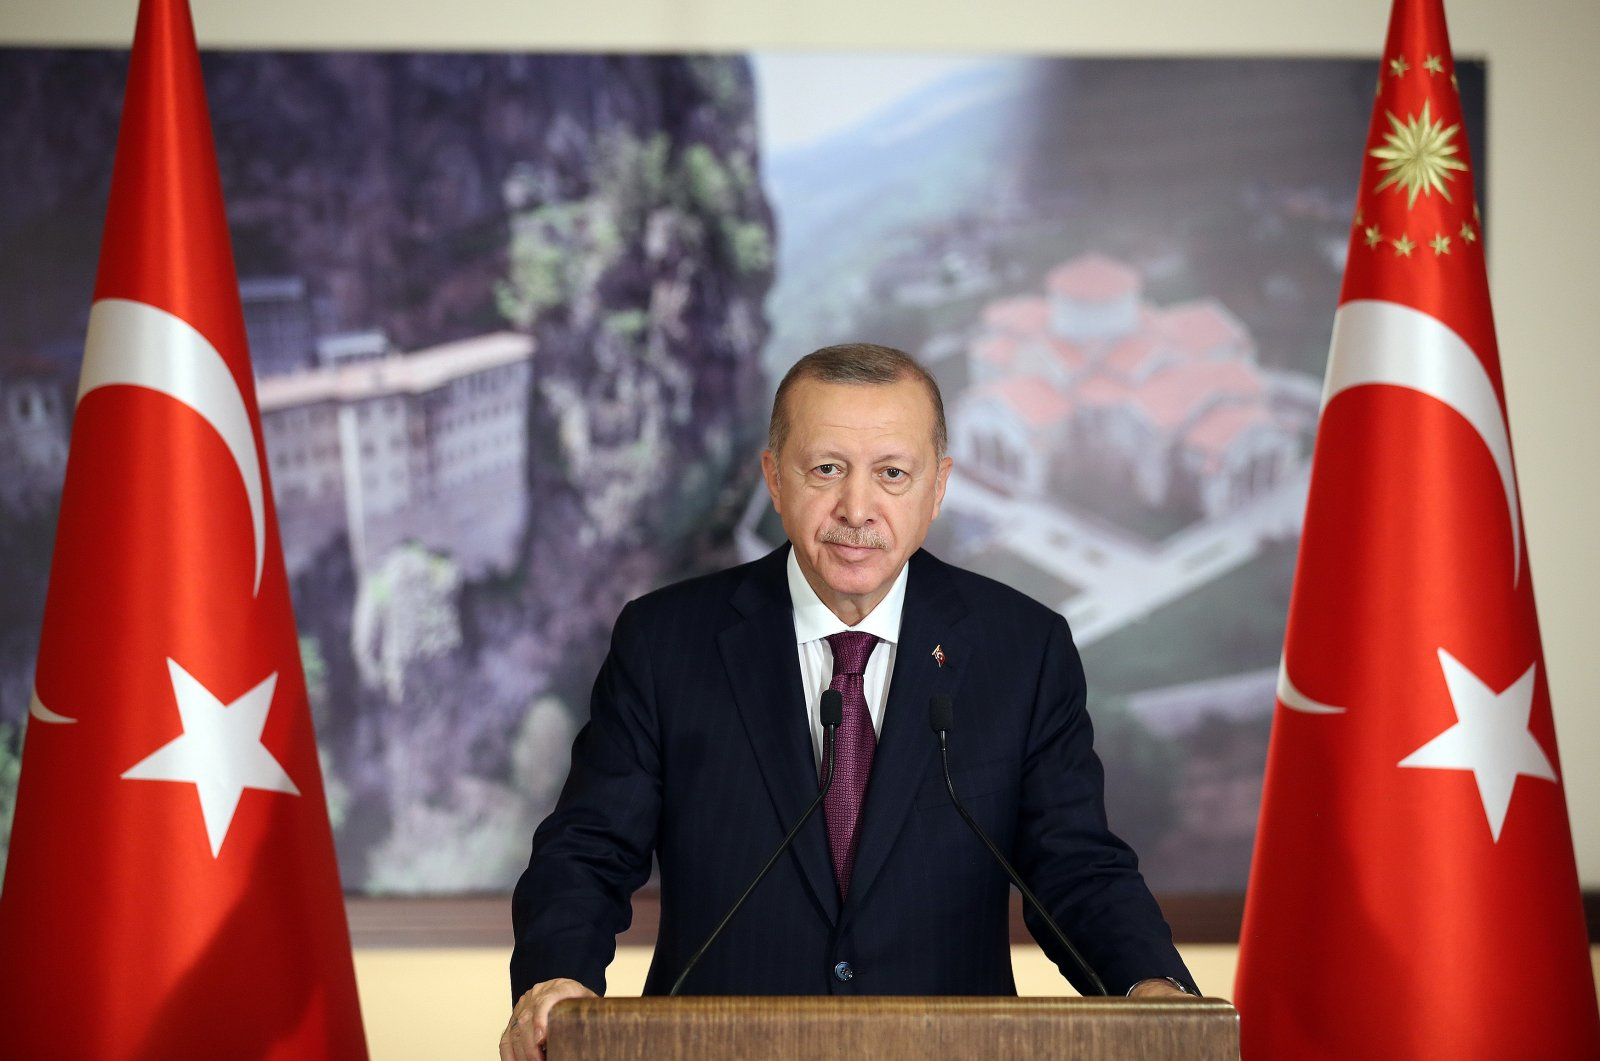 President Recep Tayyip Erdoğan speaks at the opening ceremony of the Sümela Monastery in Turkey's northern Trabzon province via teleconference from another location, July 29, 2020. (AA Photo)